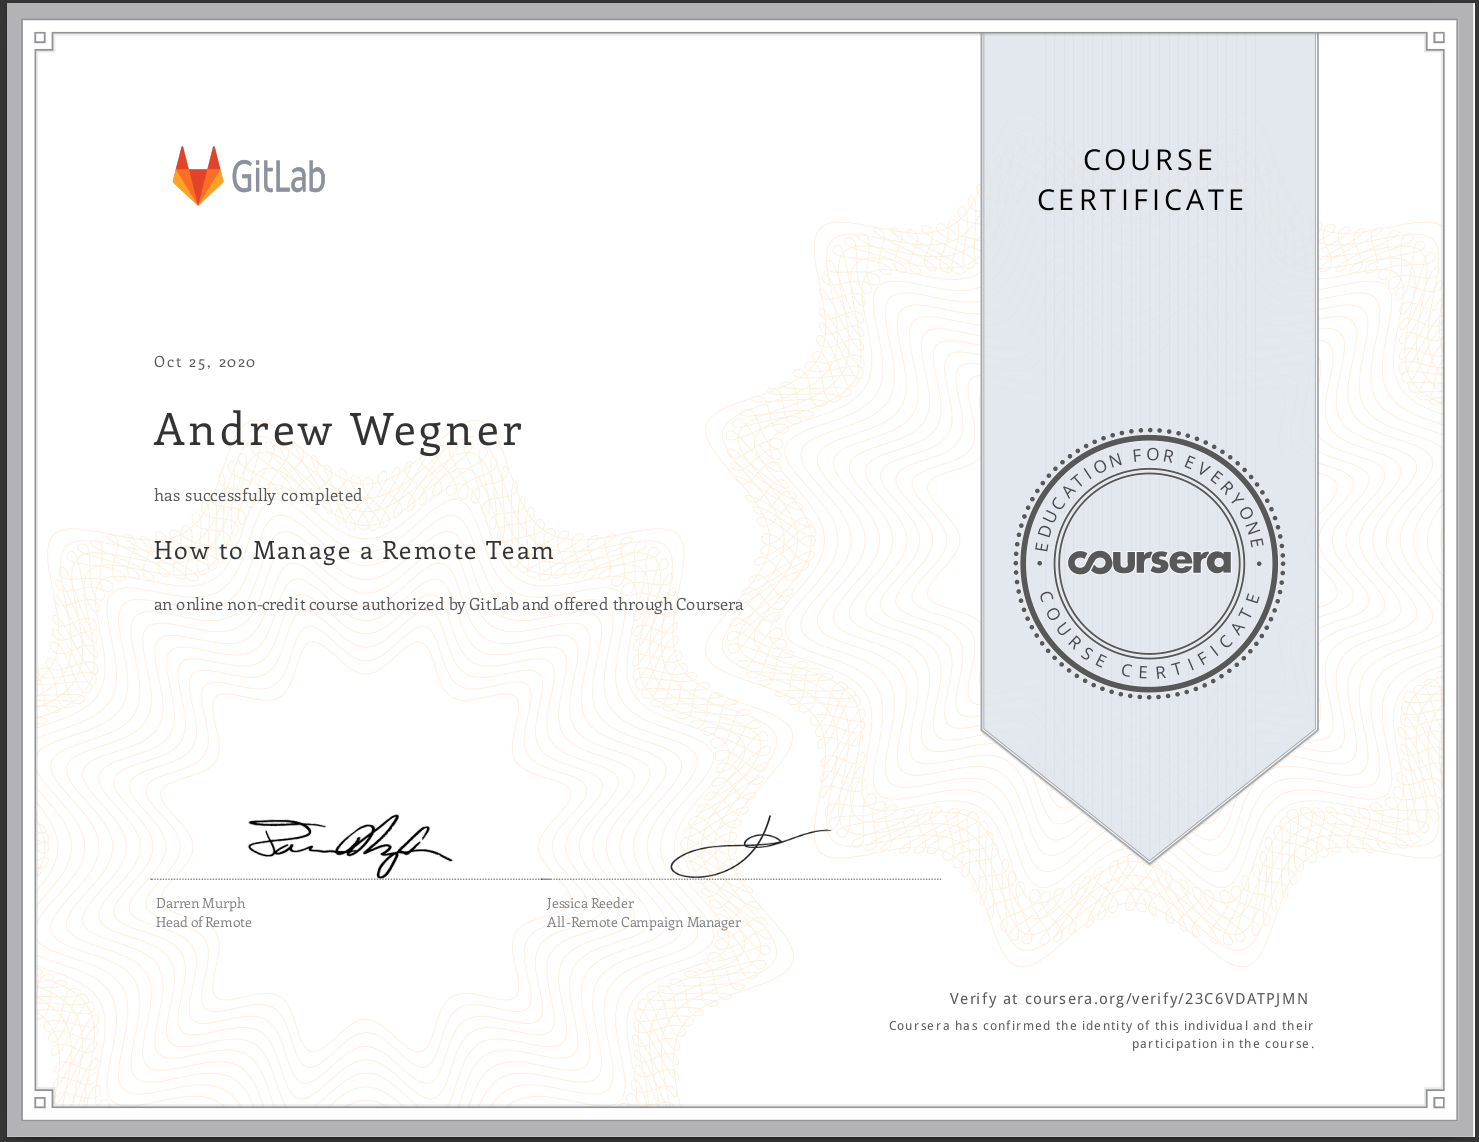 How to Manage a Remote Team Certificate